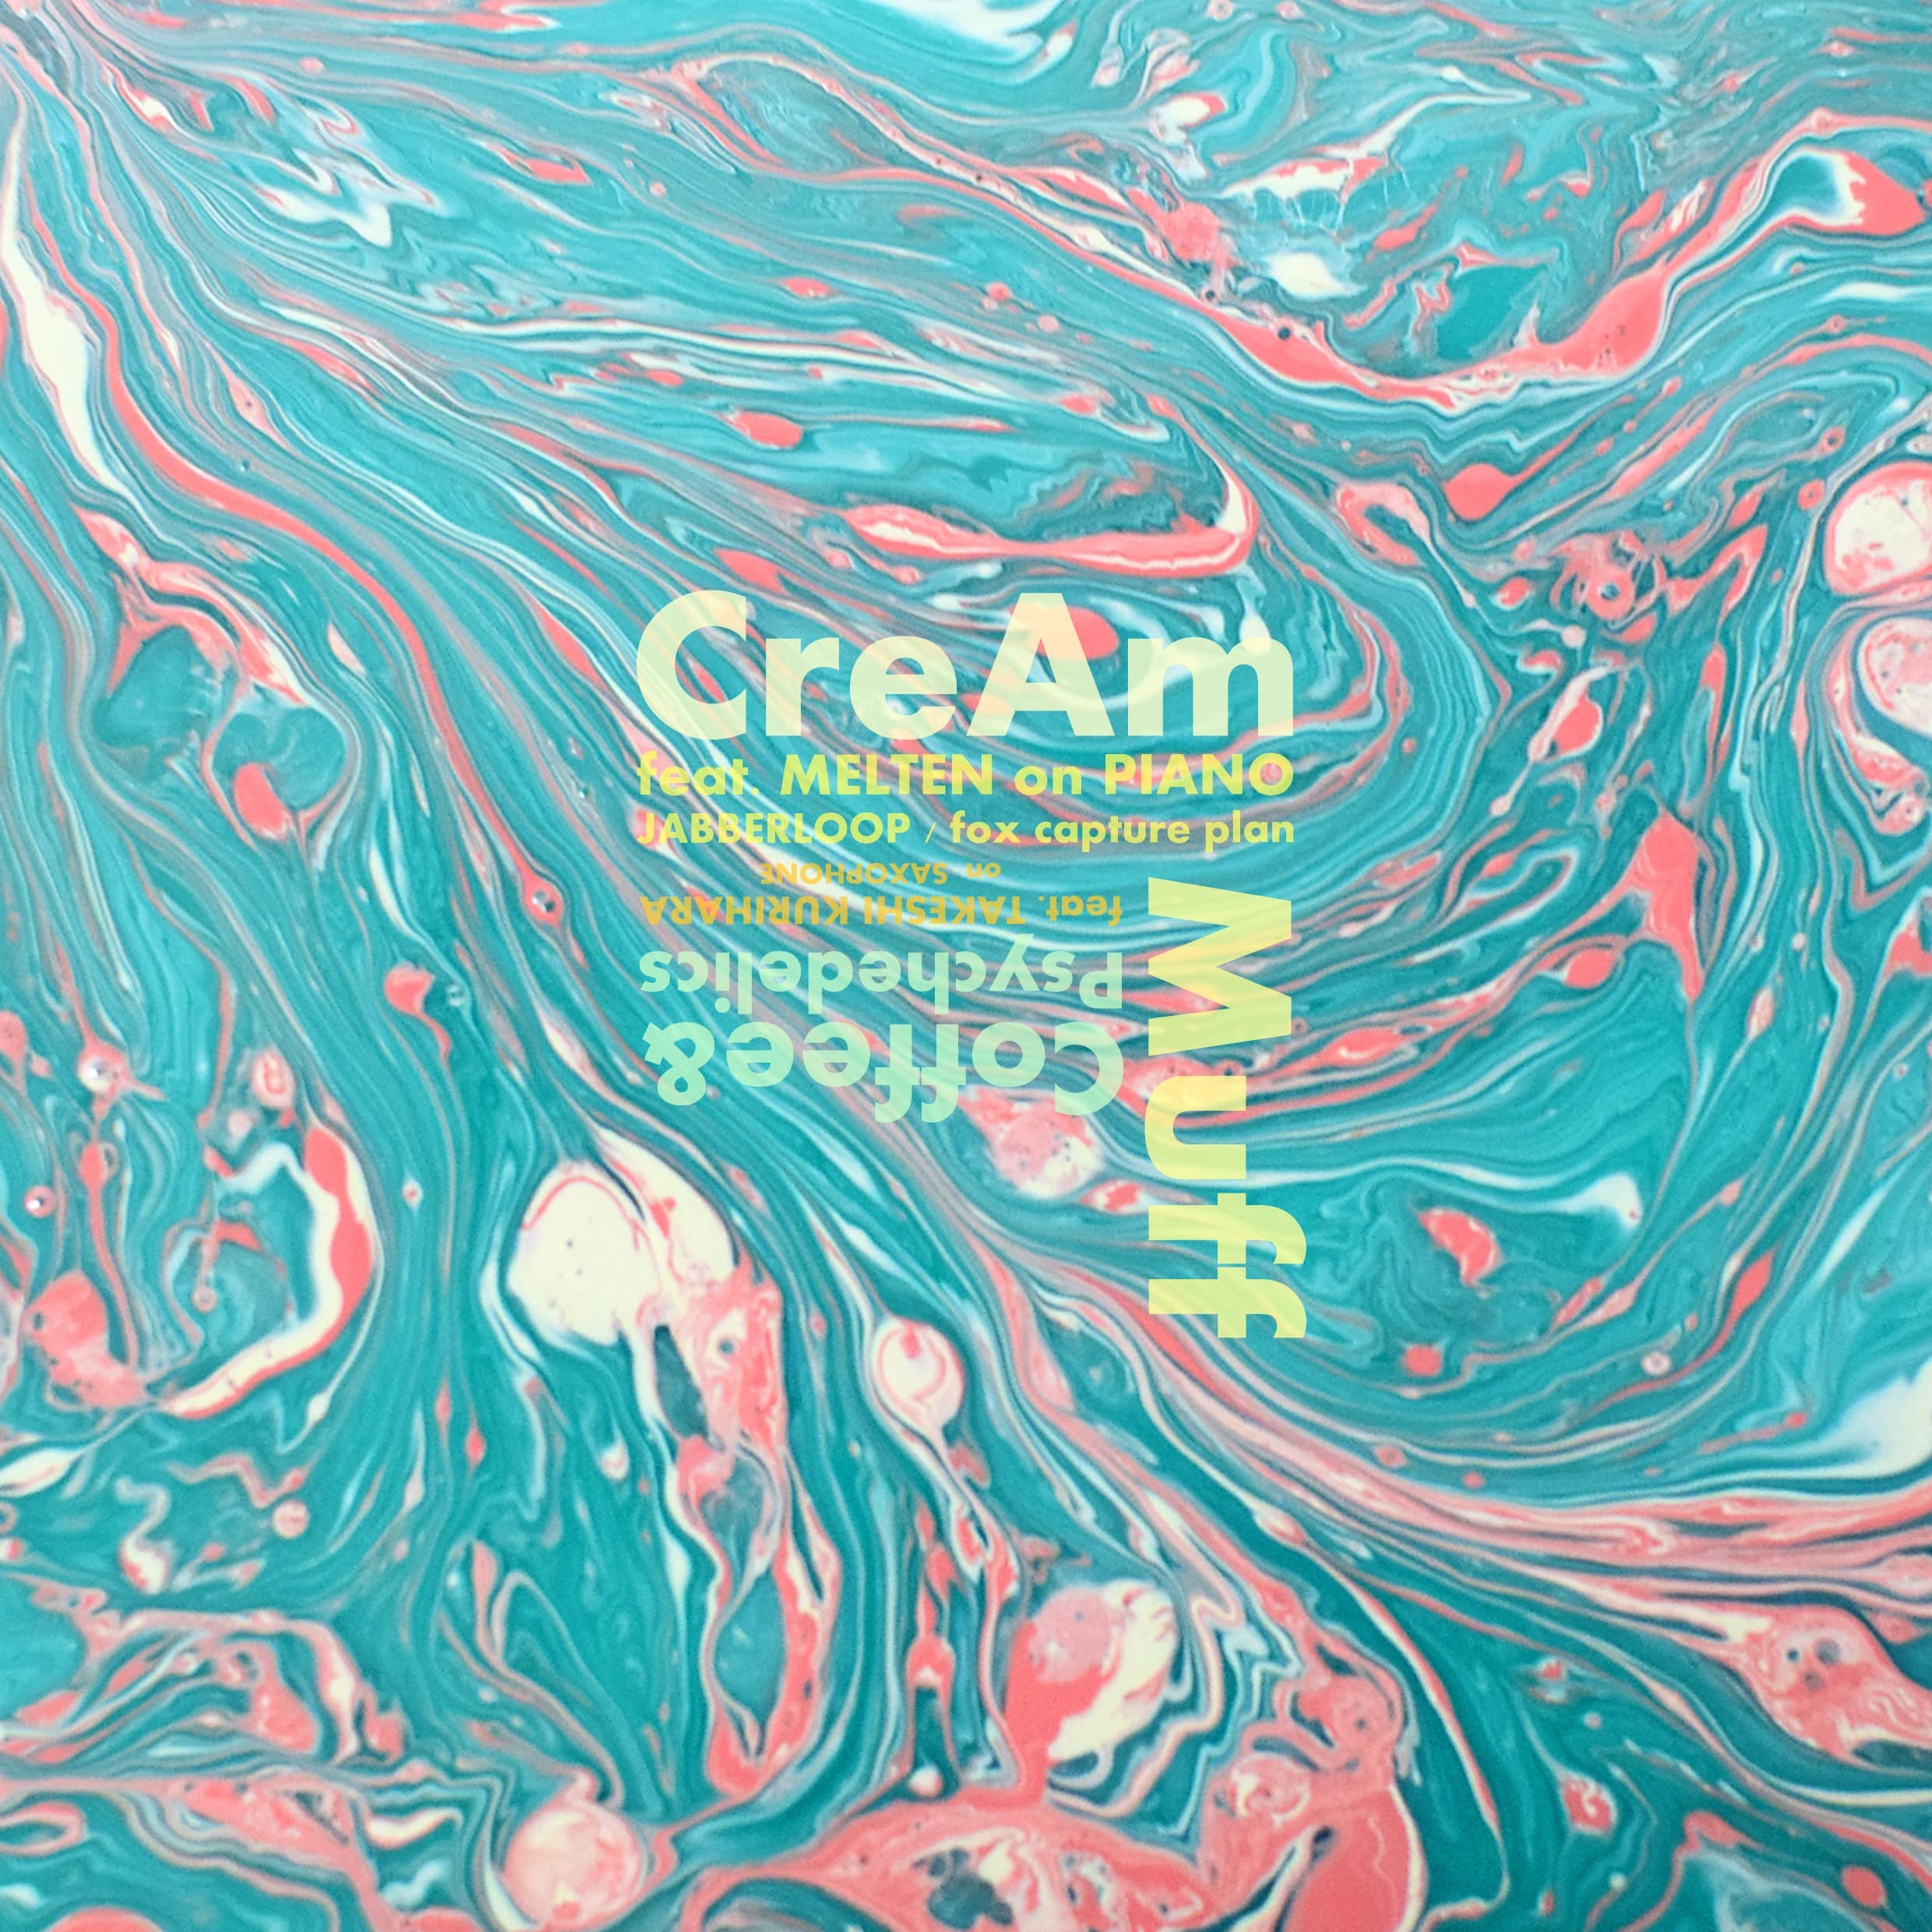 032_CreAm feat. MELTEN / Coffee & Psychedelics feat. TAKESHI KURIHARA